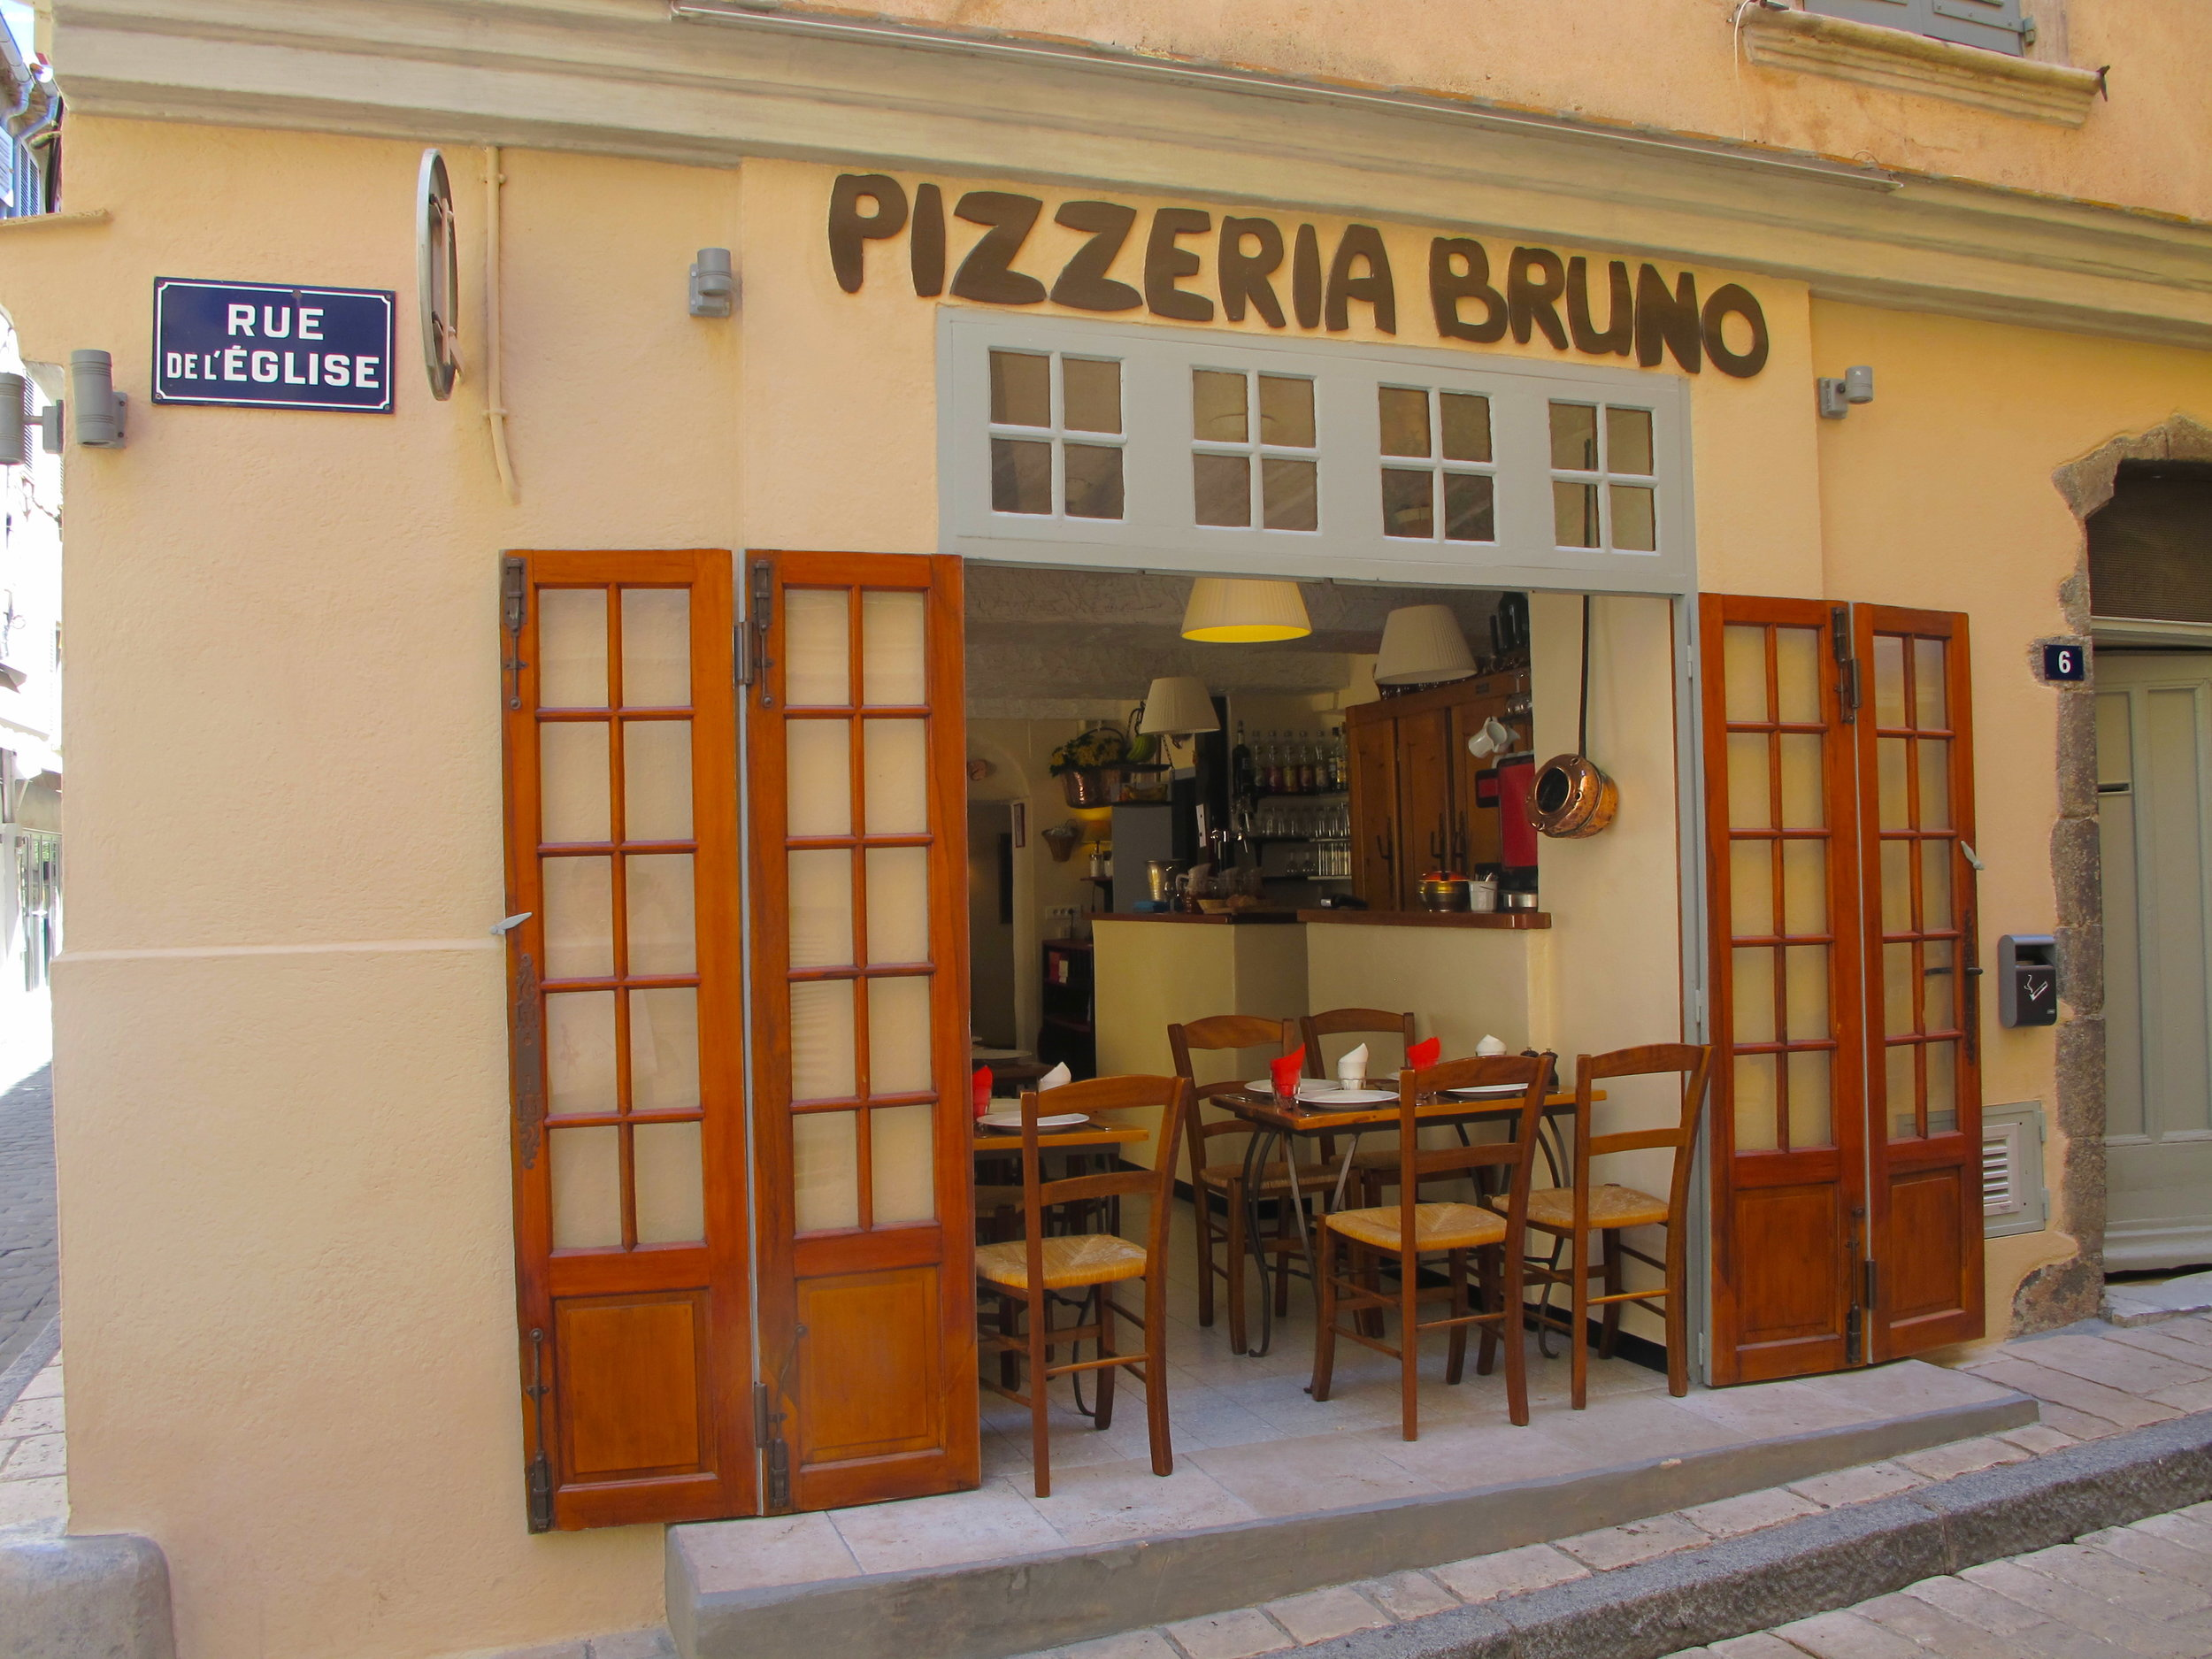 Bruno  Brigitte Bardot used to come here and it has been going since the 50s so they must be doing something right. The pizza are good value and the atmosphere is always buzzing. Wood fired oven pizza that is smokey and delicious.  6 Rue de l'Église, 83990 Saint-Tropez, France Tel: +33 4 94 97 05 18  https://www.tripadvisor.co.uk/Restaurant_Review-g187242-d2197179-Reviews-Pizzeria_Bruno-Saint_Tropez_French_Riviera_Cote_d_Azur_Provence.html